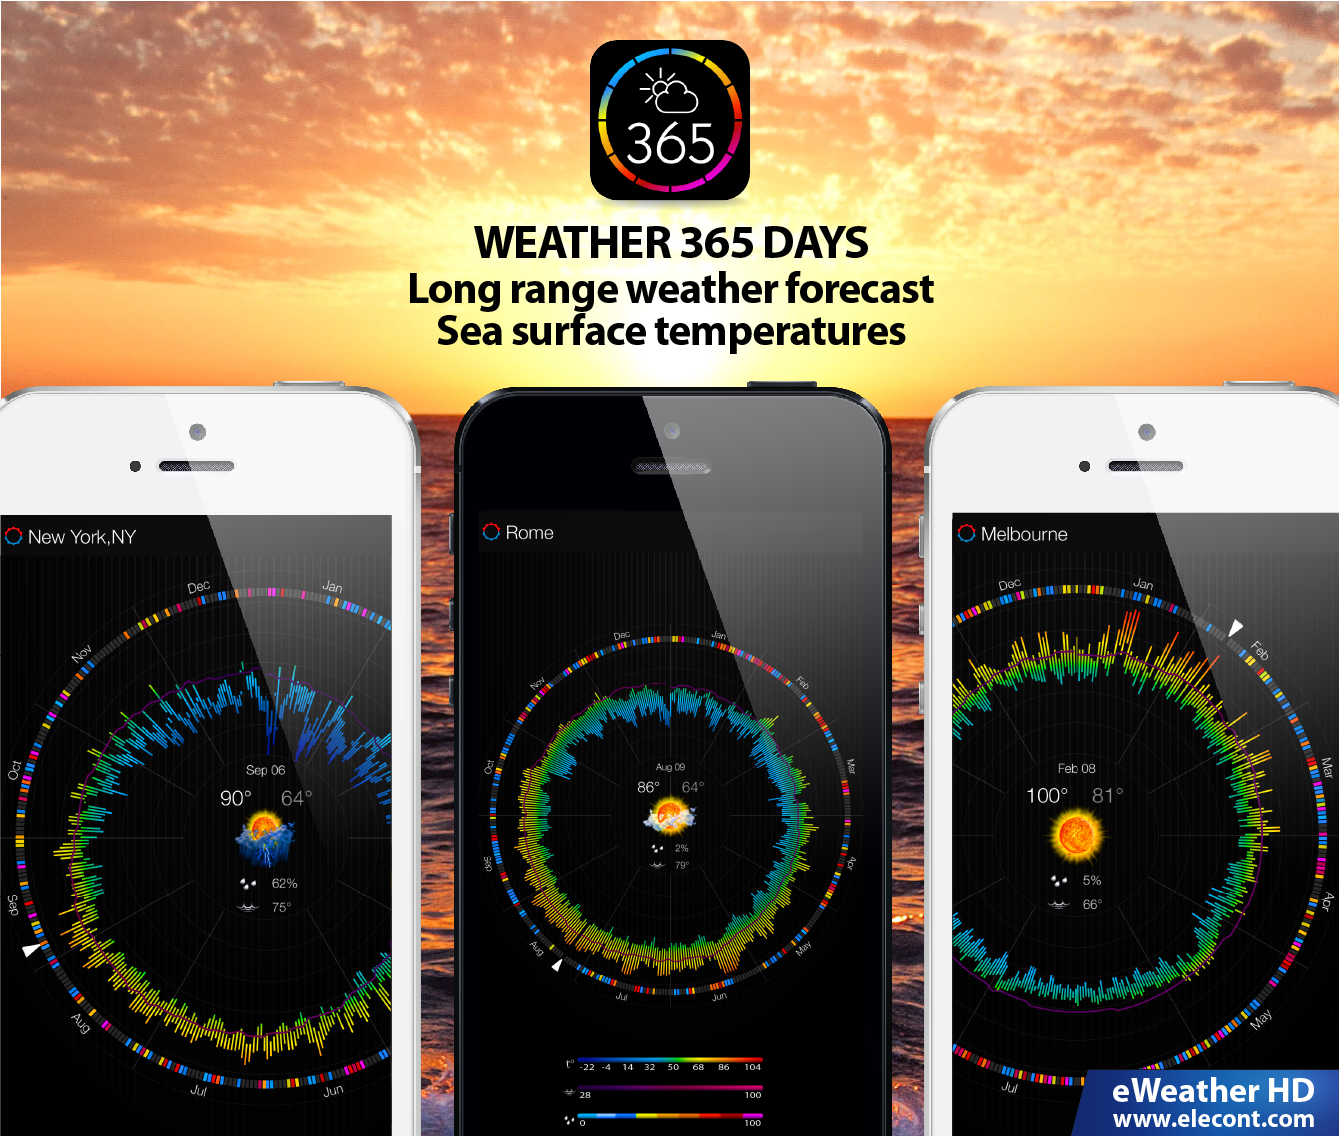 Weather 365 days - Vacation trip and wedding travel time planner. Weather 365 is a free planning tool for iPhone and iPad that provides long range weather forecasts based on a historical weather data. The app presents its information in an amazingly intuitive format, with a simple, user-friendly interface and single-touch access to weather trends, ranging from a single day to a year.